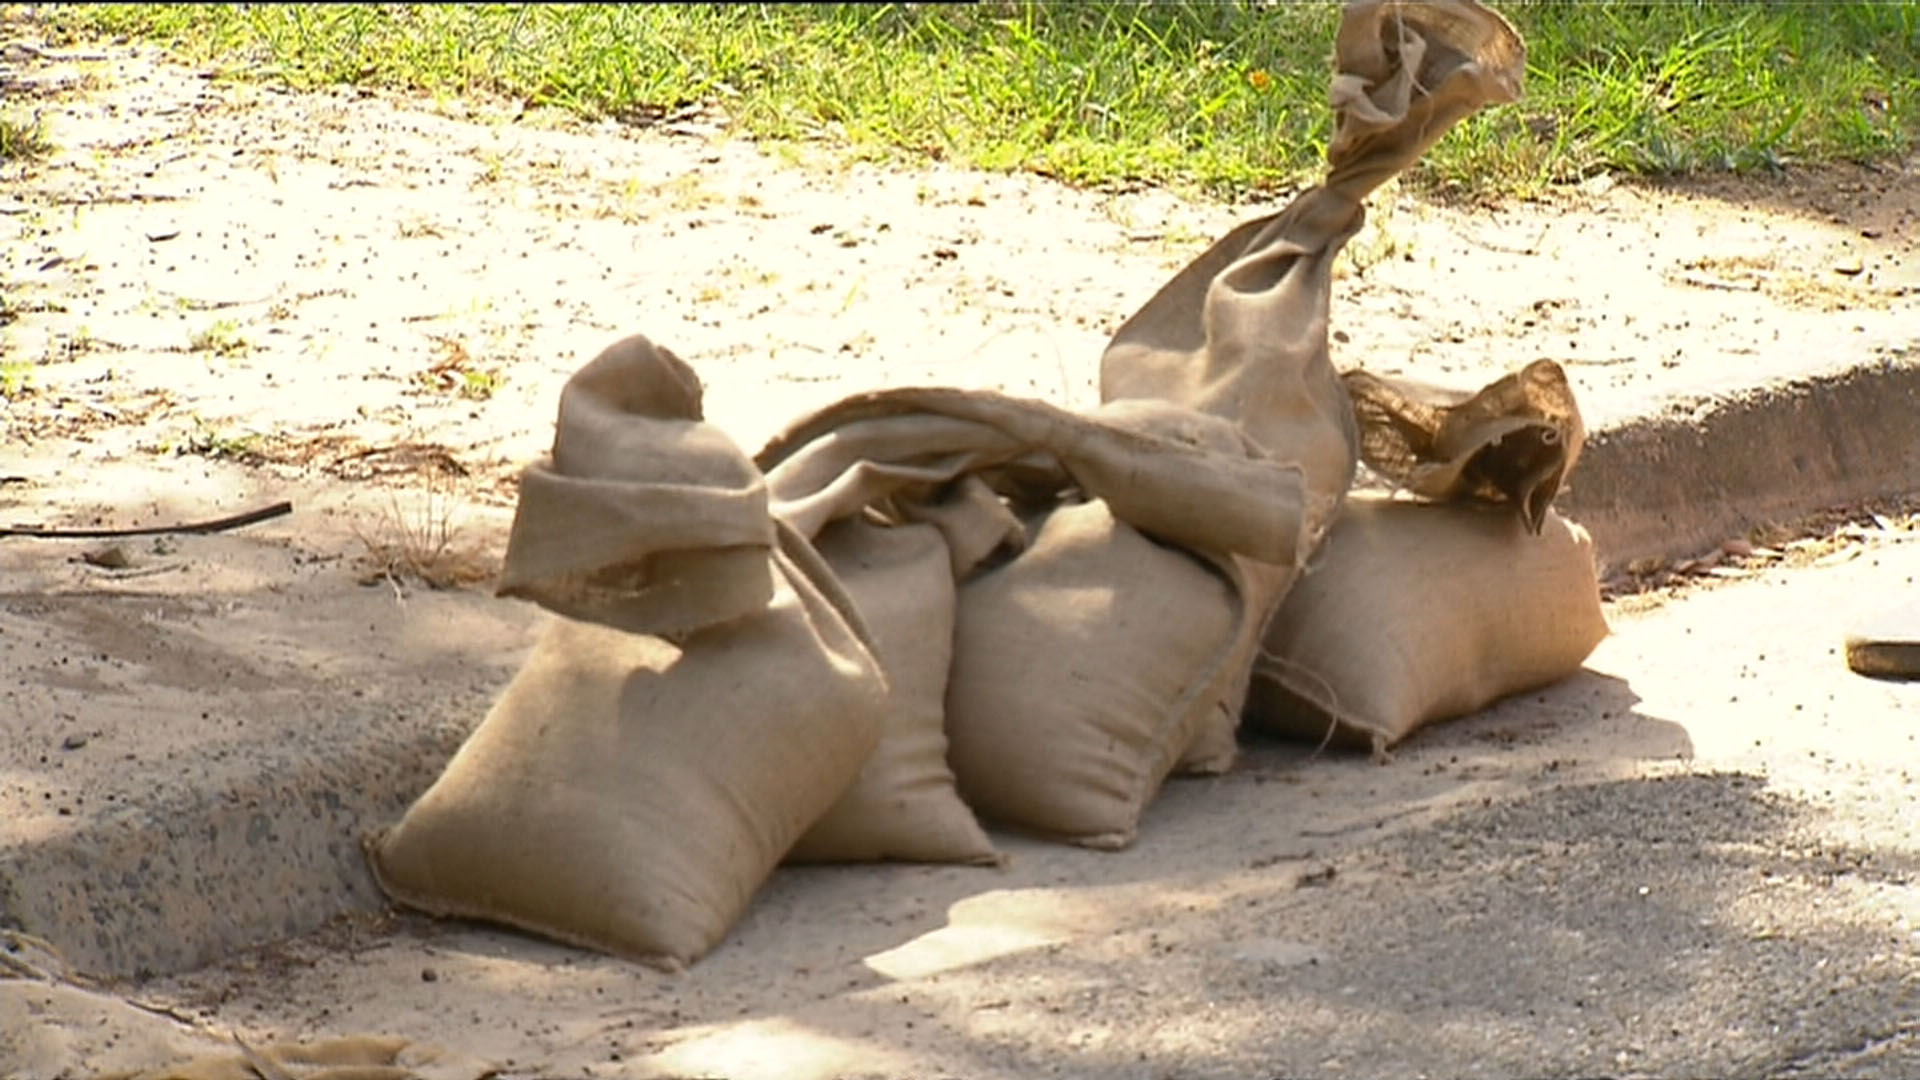 Sandbags distributed ahead of severe weather